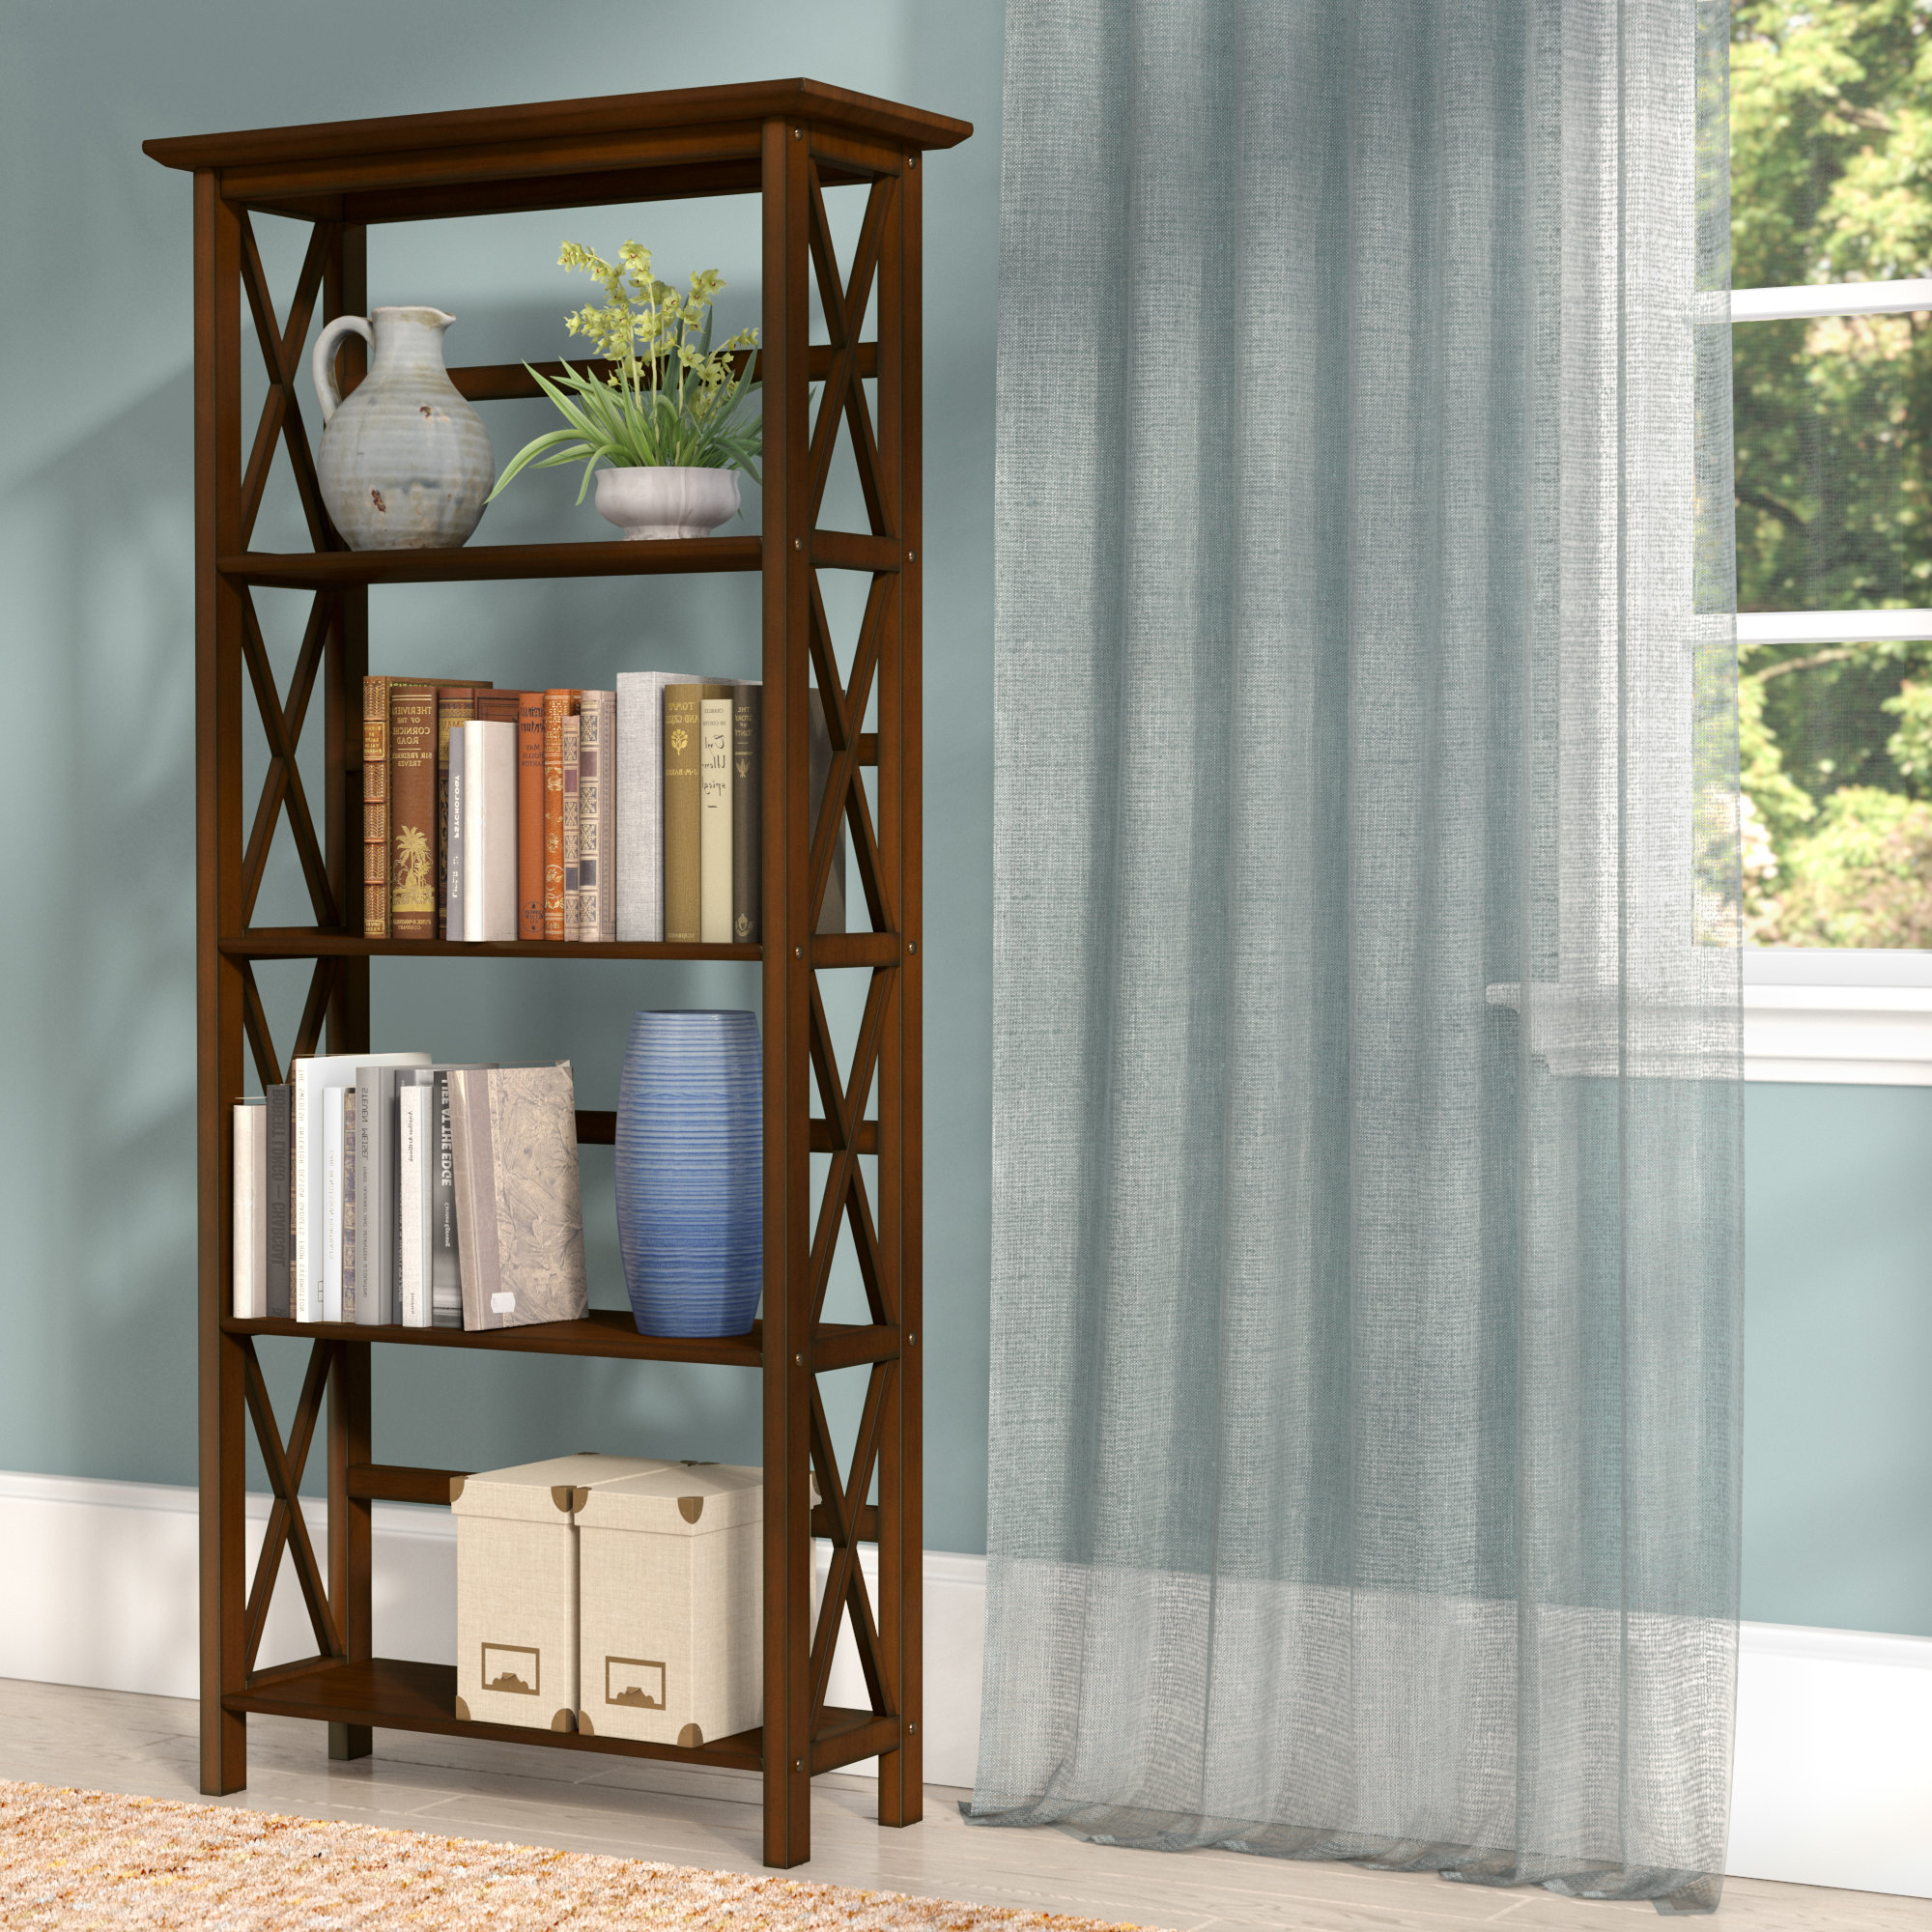 Gracelynn 5 Tier Etagere Bookcases Intended For Most Recent Hitz Etagere Bookcase (View 12 of 20)